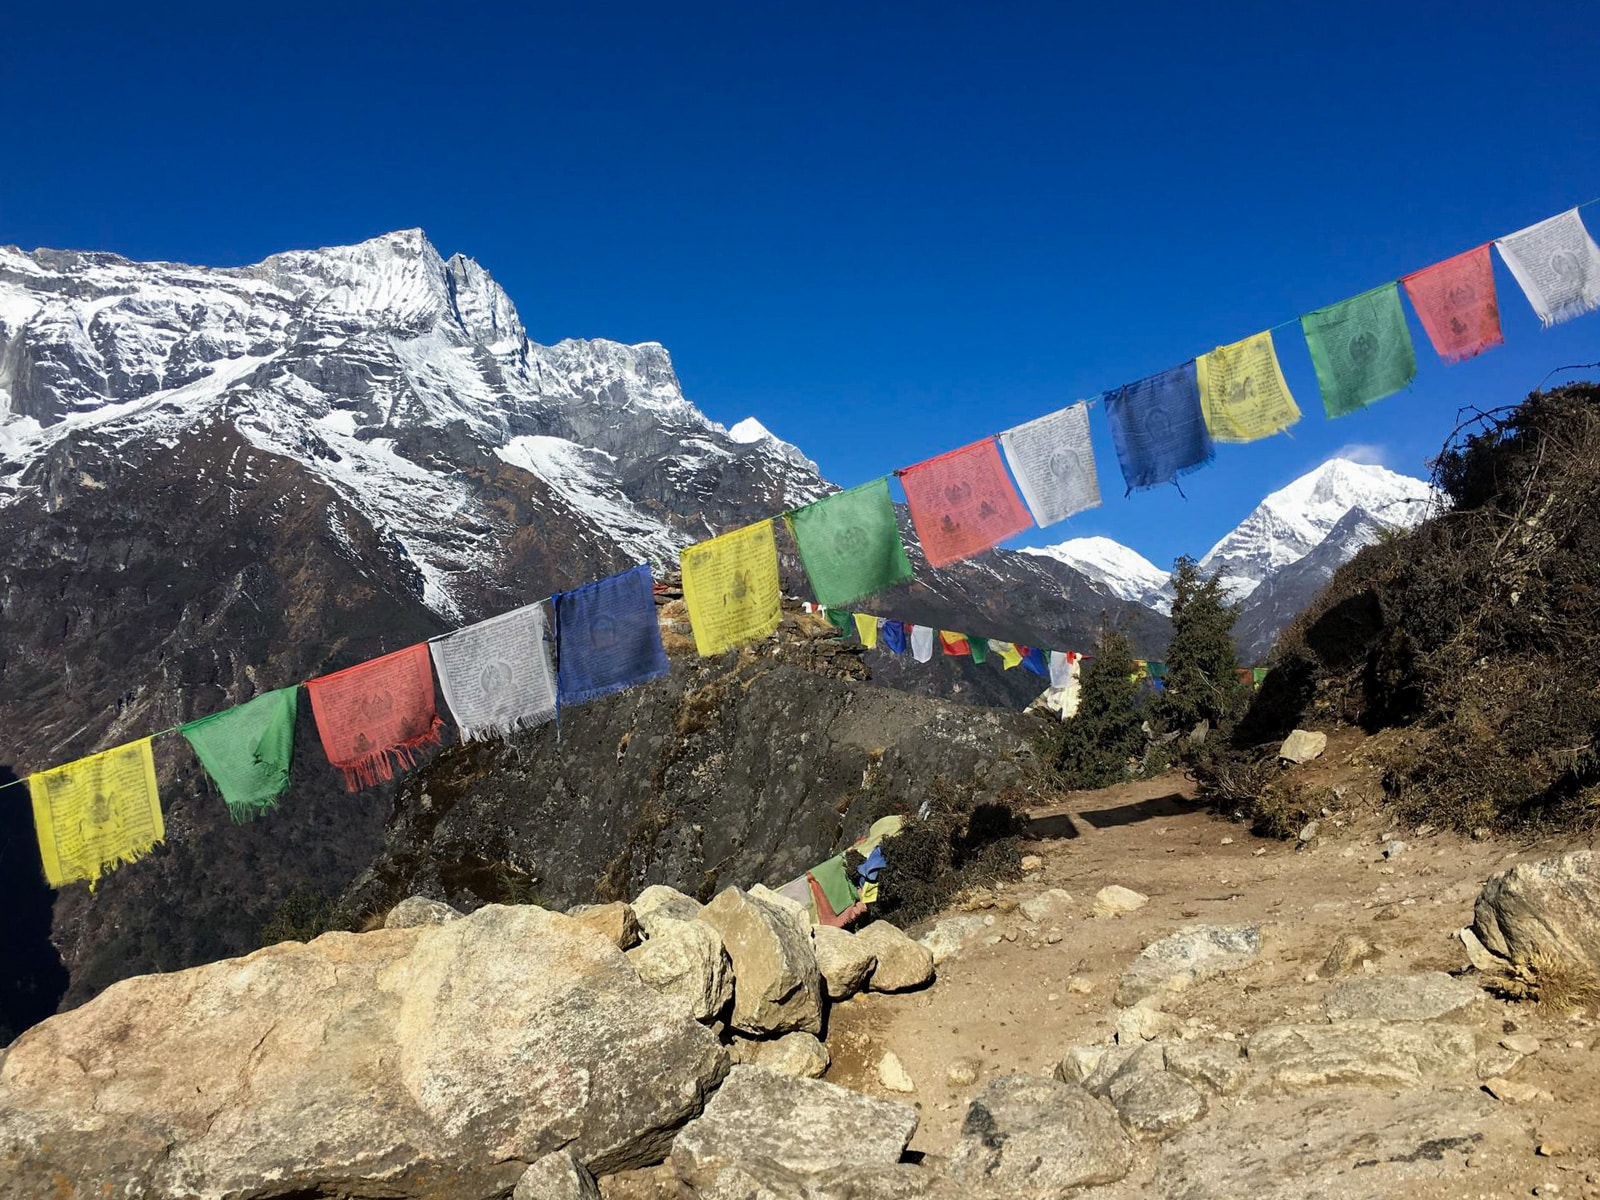 Prayer flags on a trail near Namche Bazar in Nepal